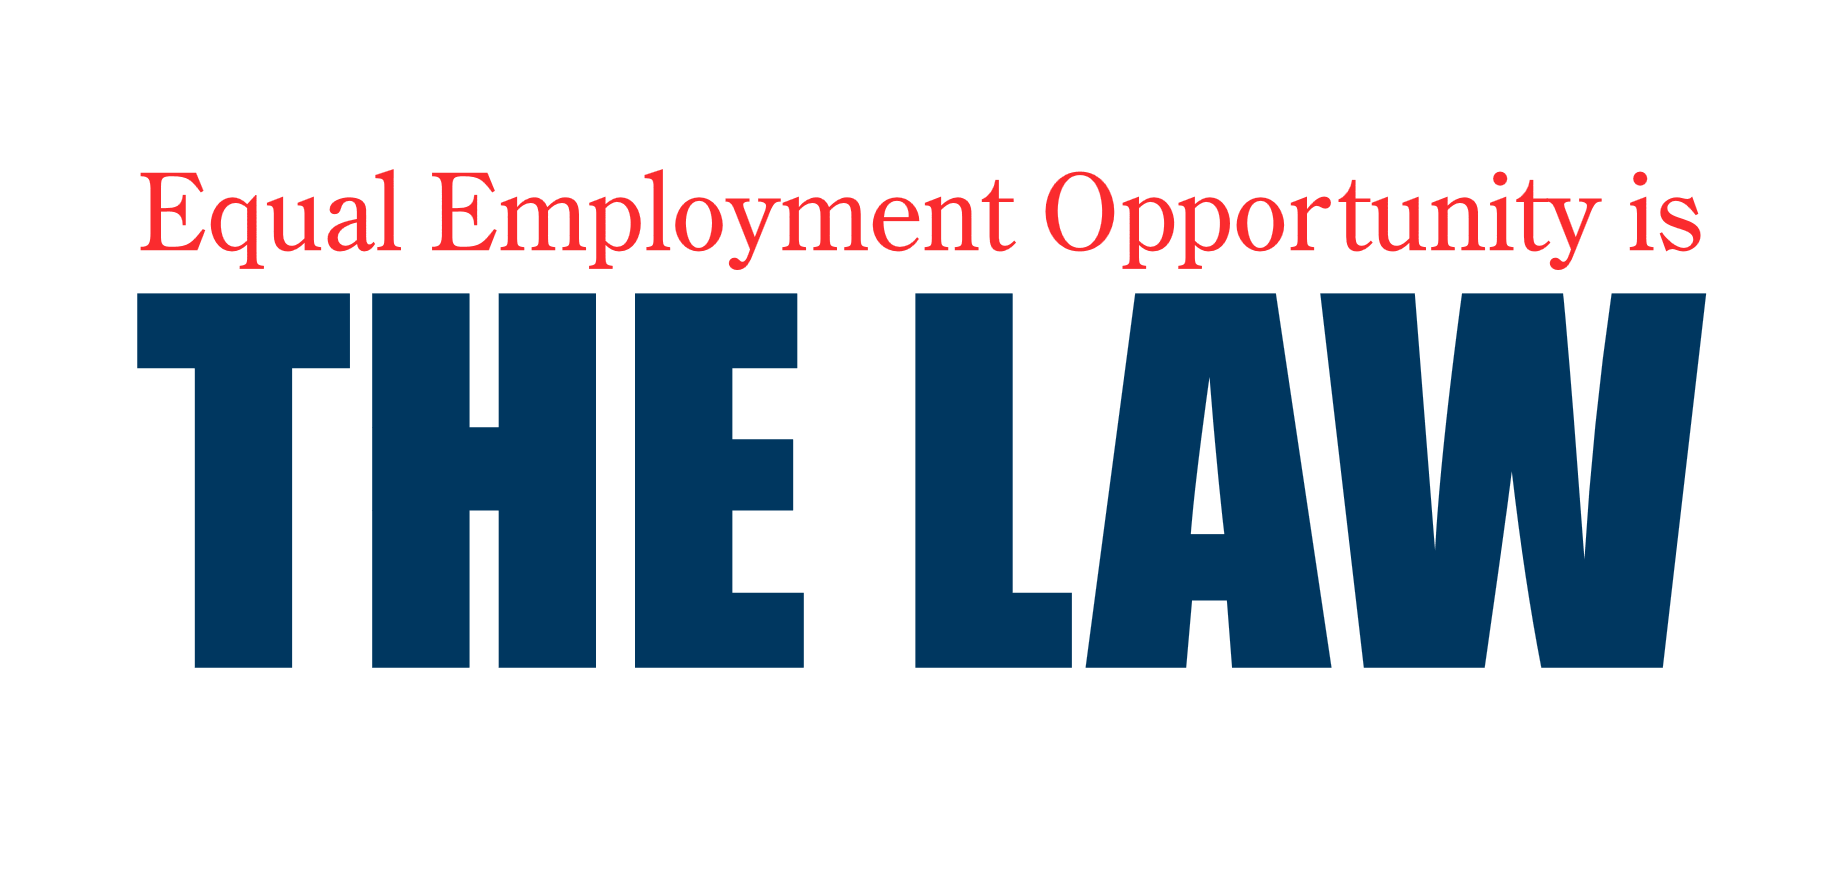 eeoc discrimination case study An essay or paper on eeoc: case study of complaint procedure filing a discrimination complaint with the eeoc and in federal court in the case where john wants to.